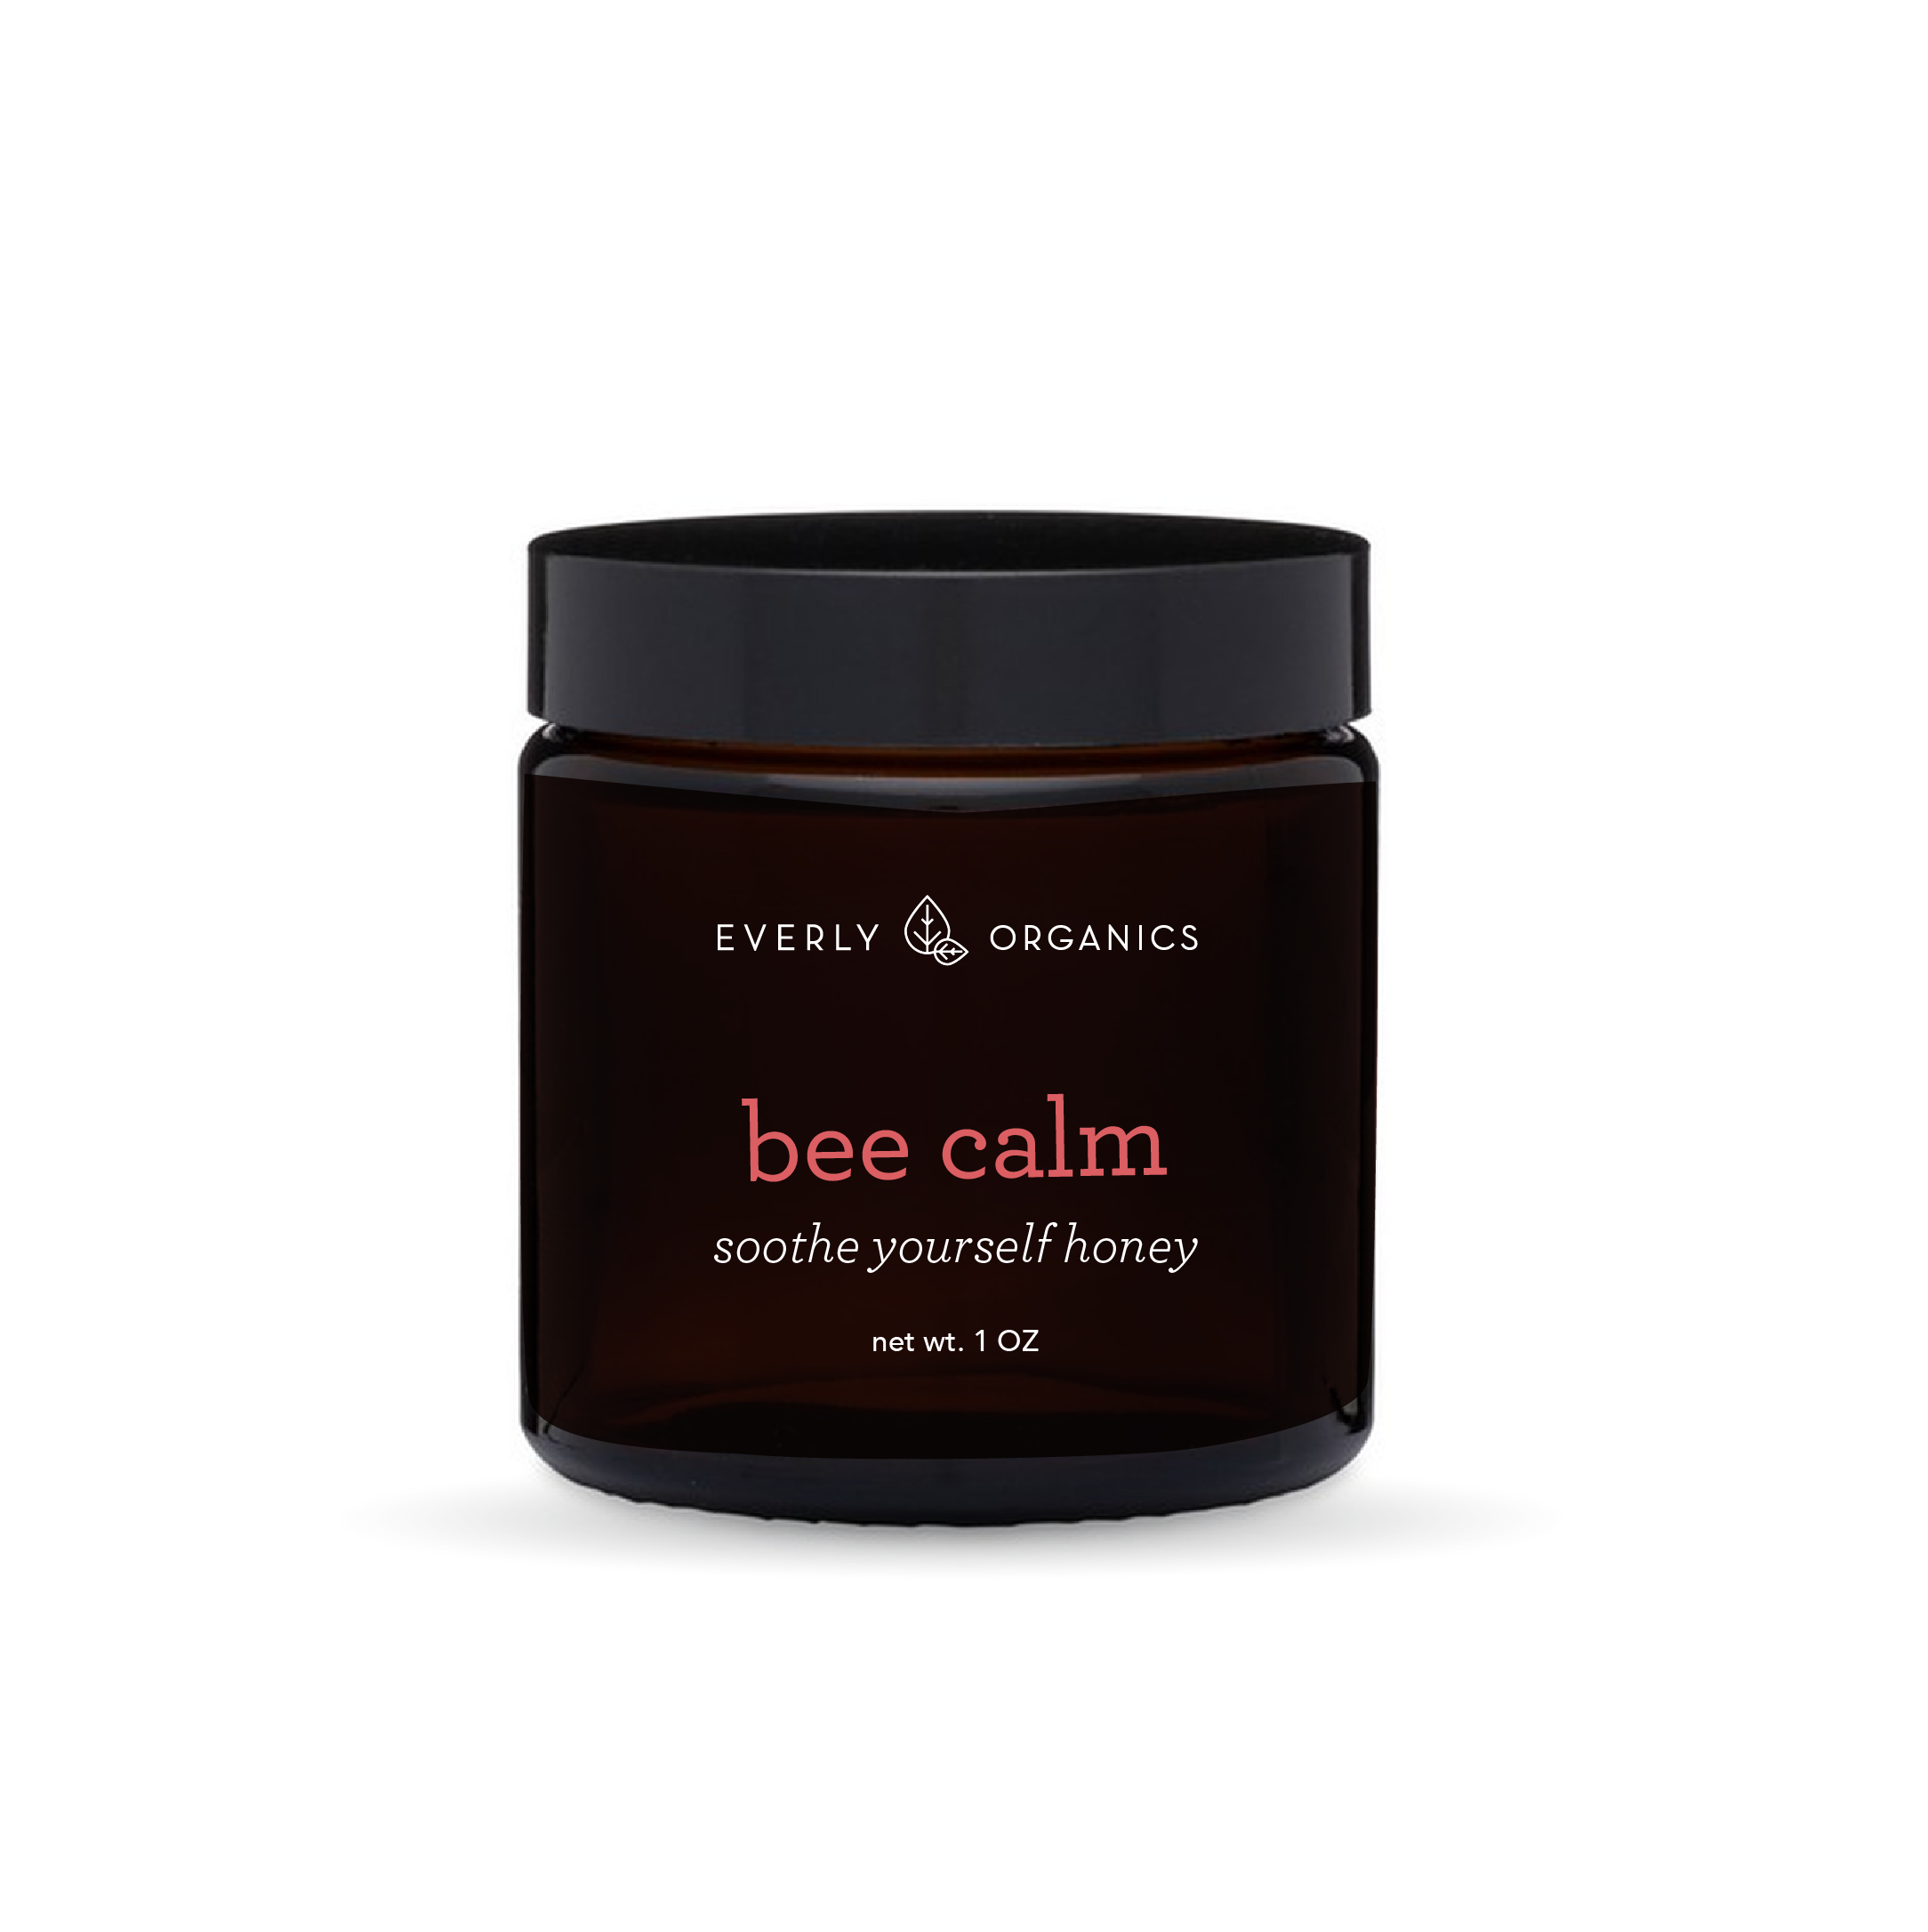 Bee Calm | Soothe Yourself Honey